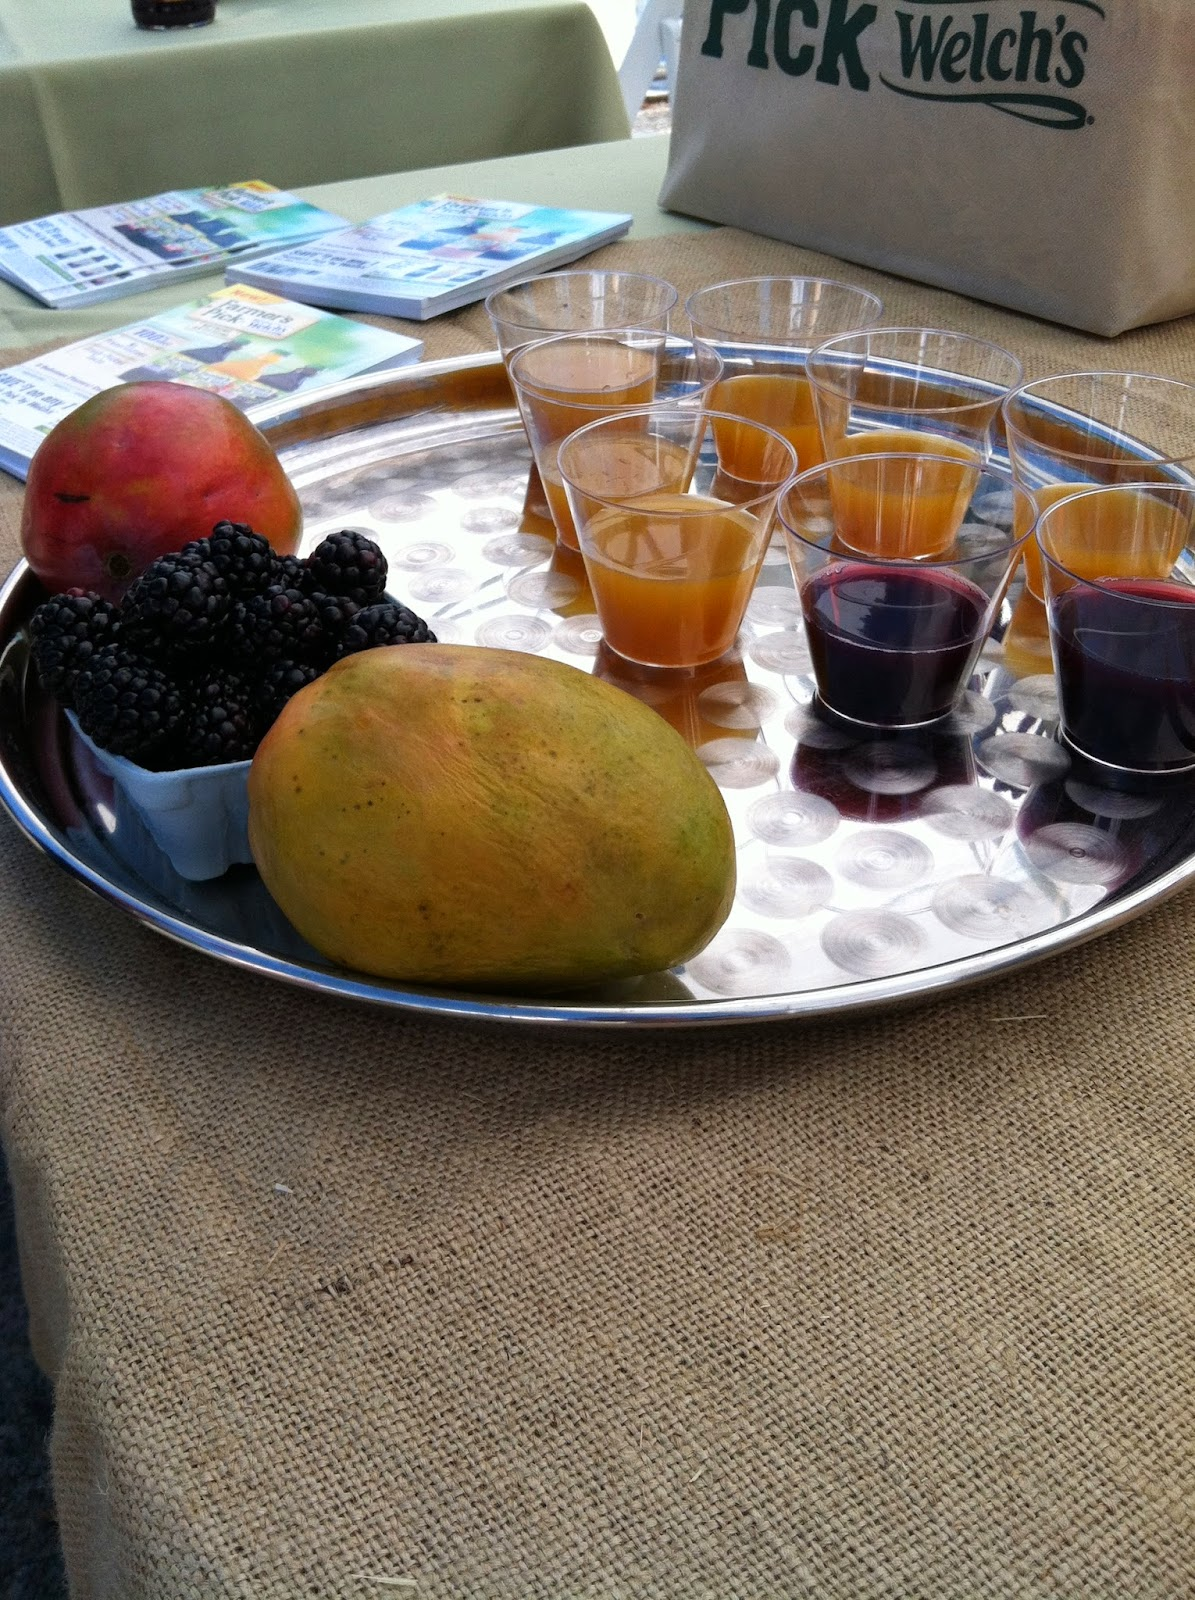 Samples of Farmer's Pick by Welch's Blackberry and Mango juices